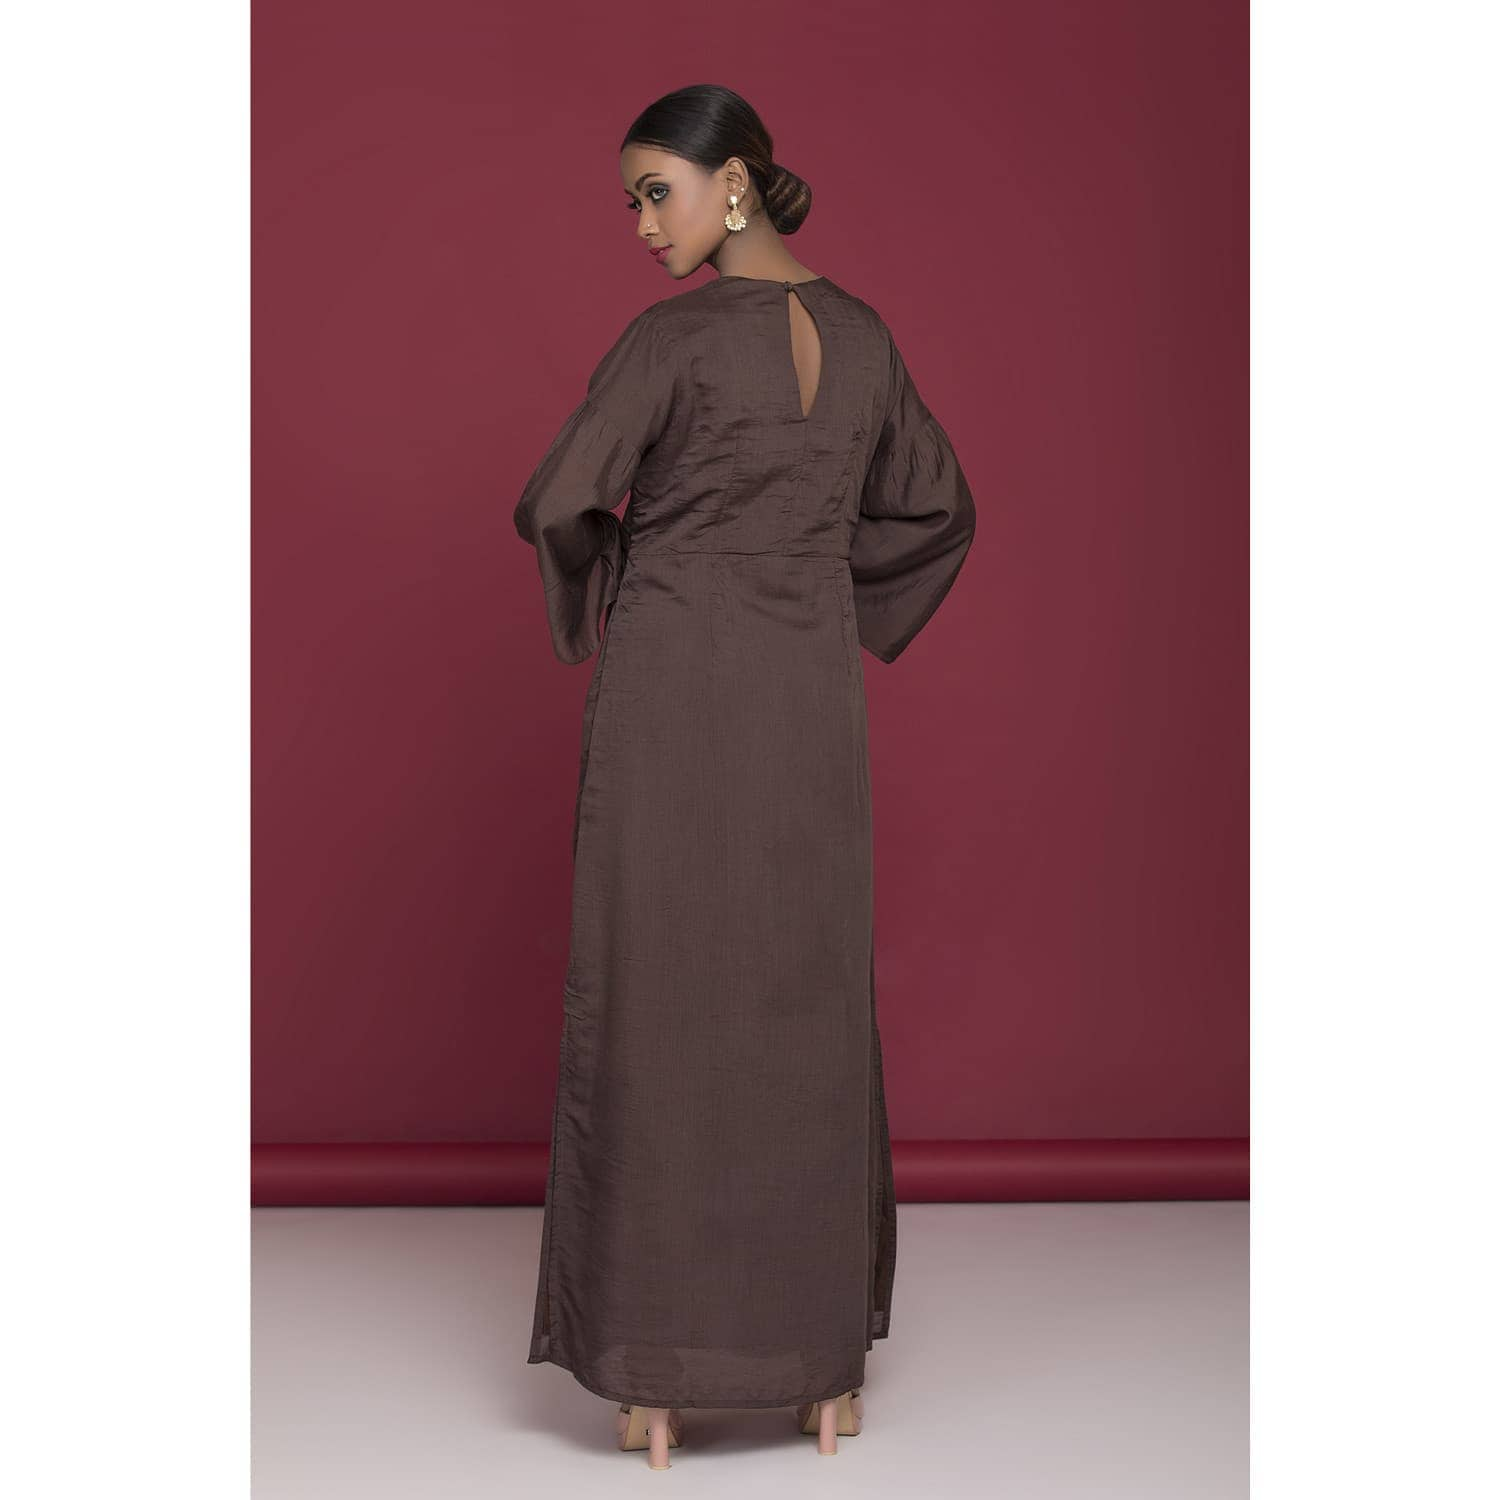 Brown dress with thread embroidery